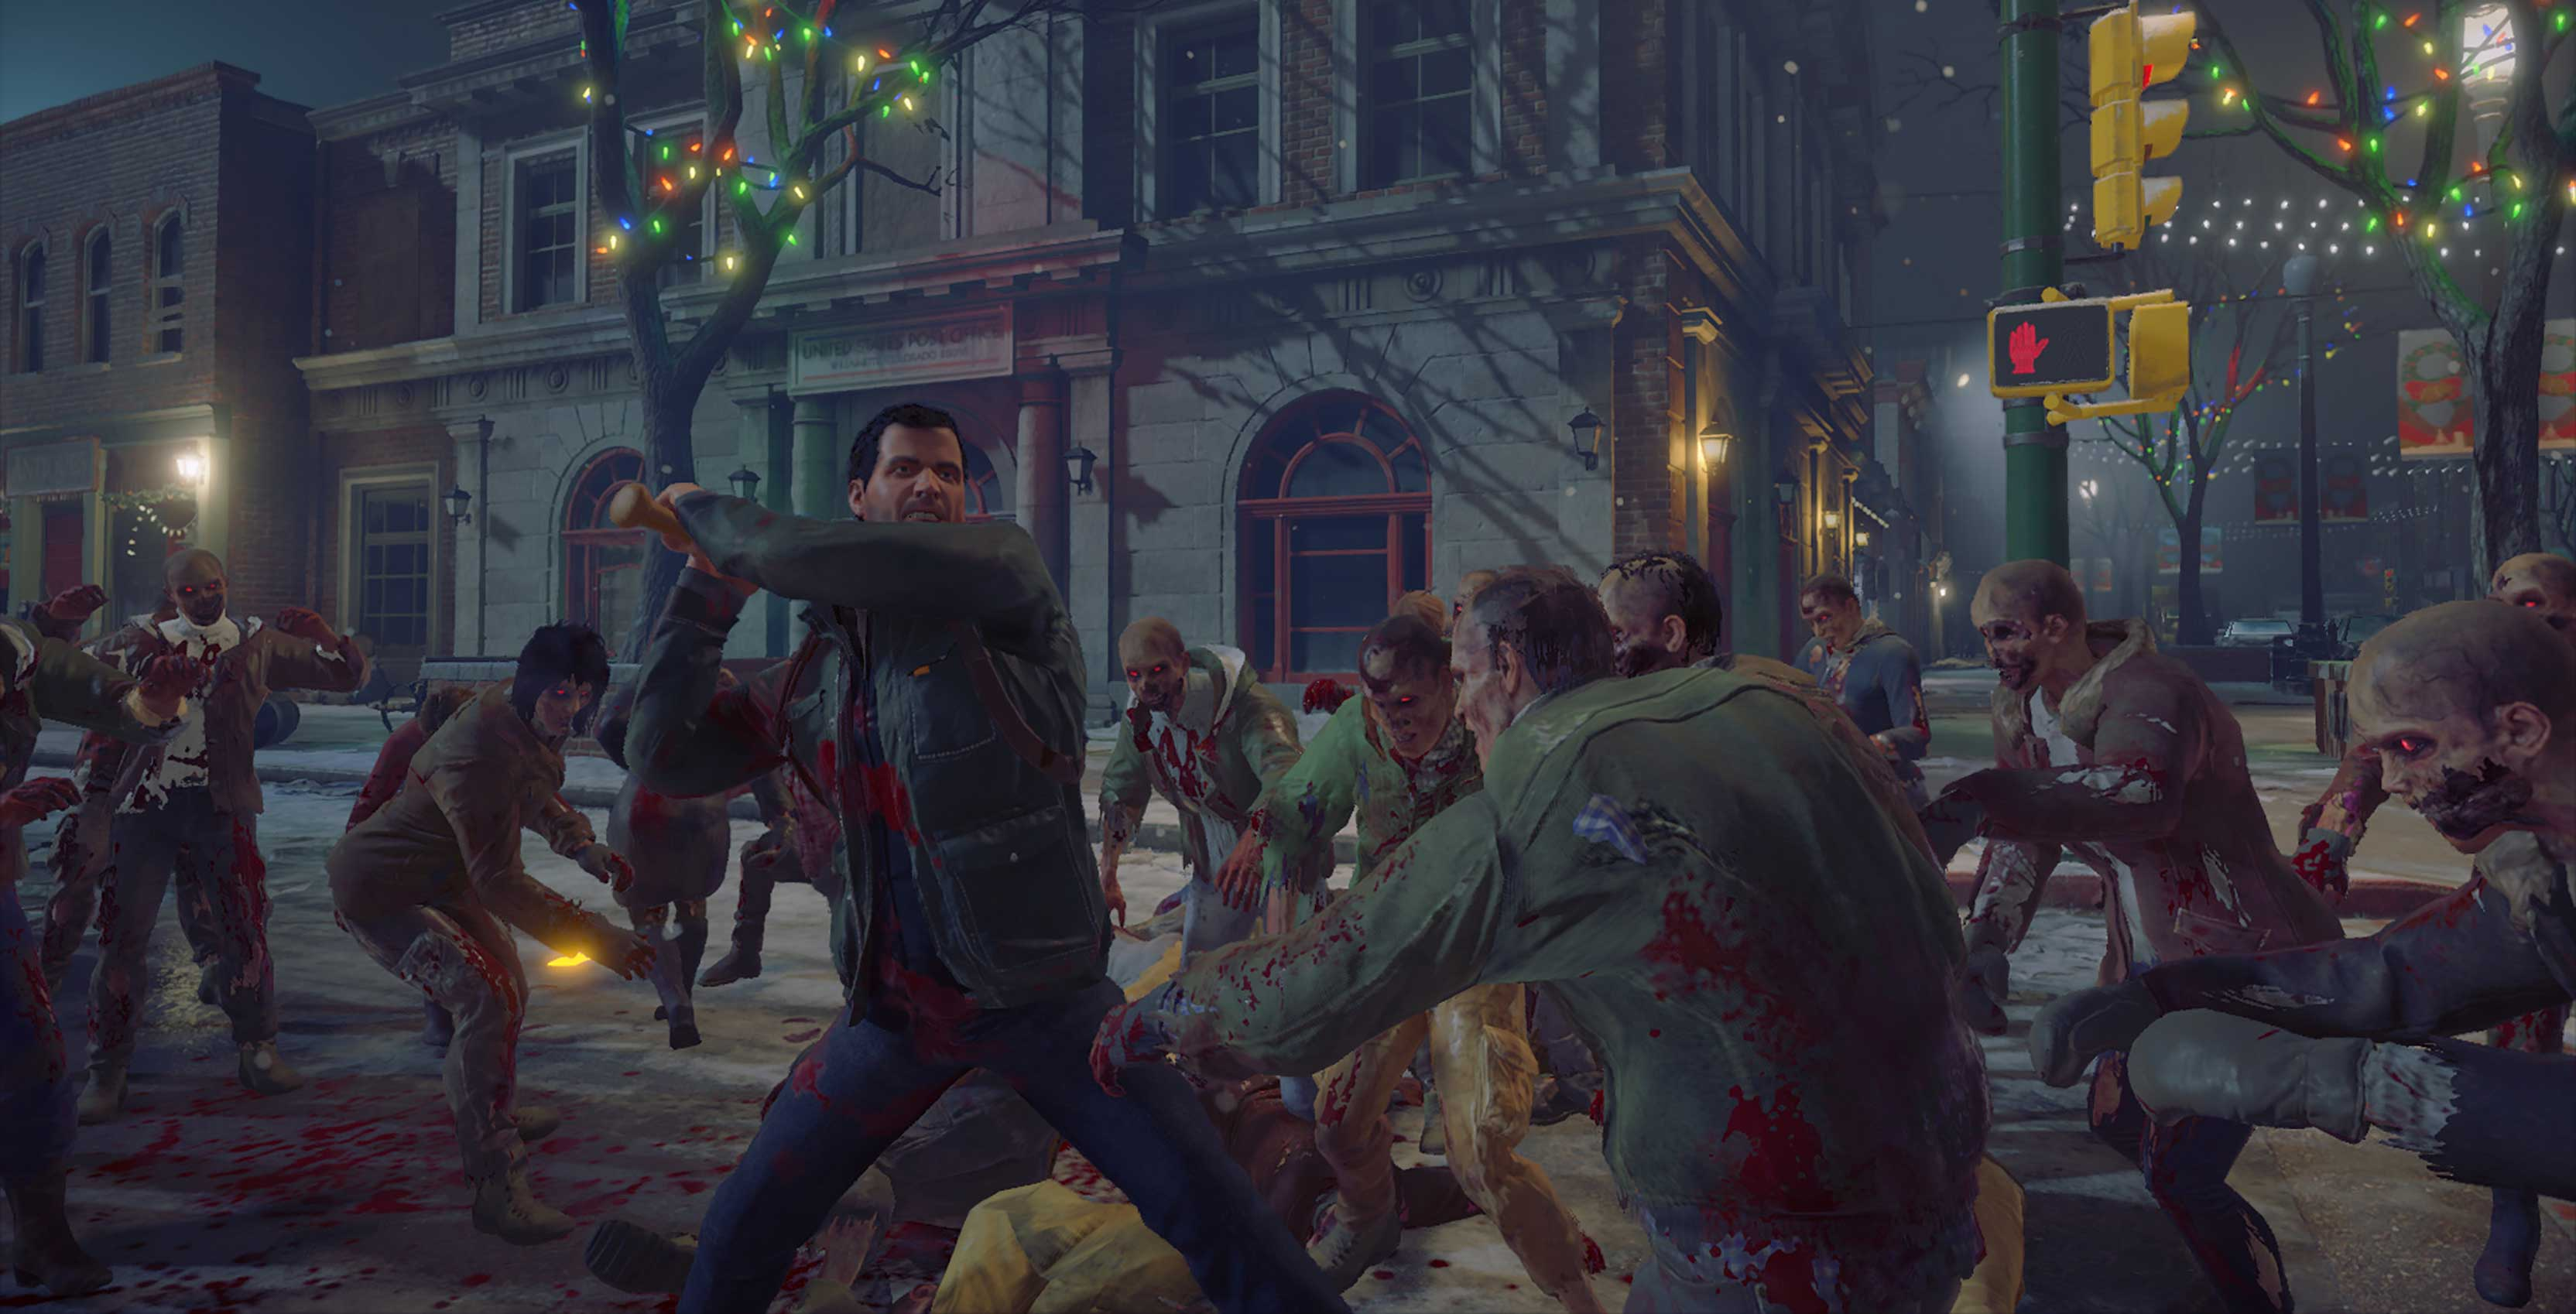 Dead Rising 4 Frank West fights zombies